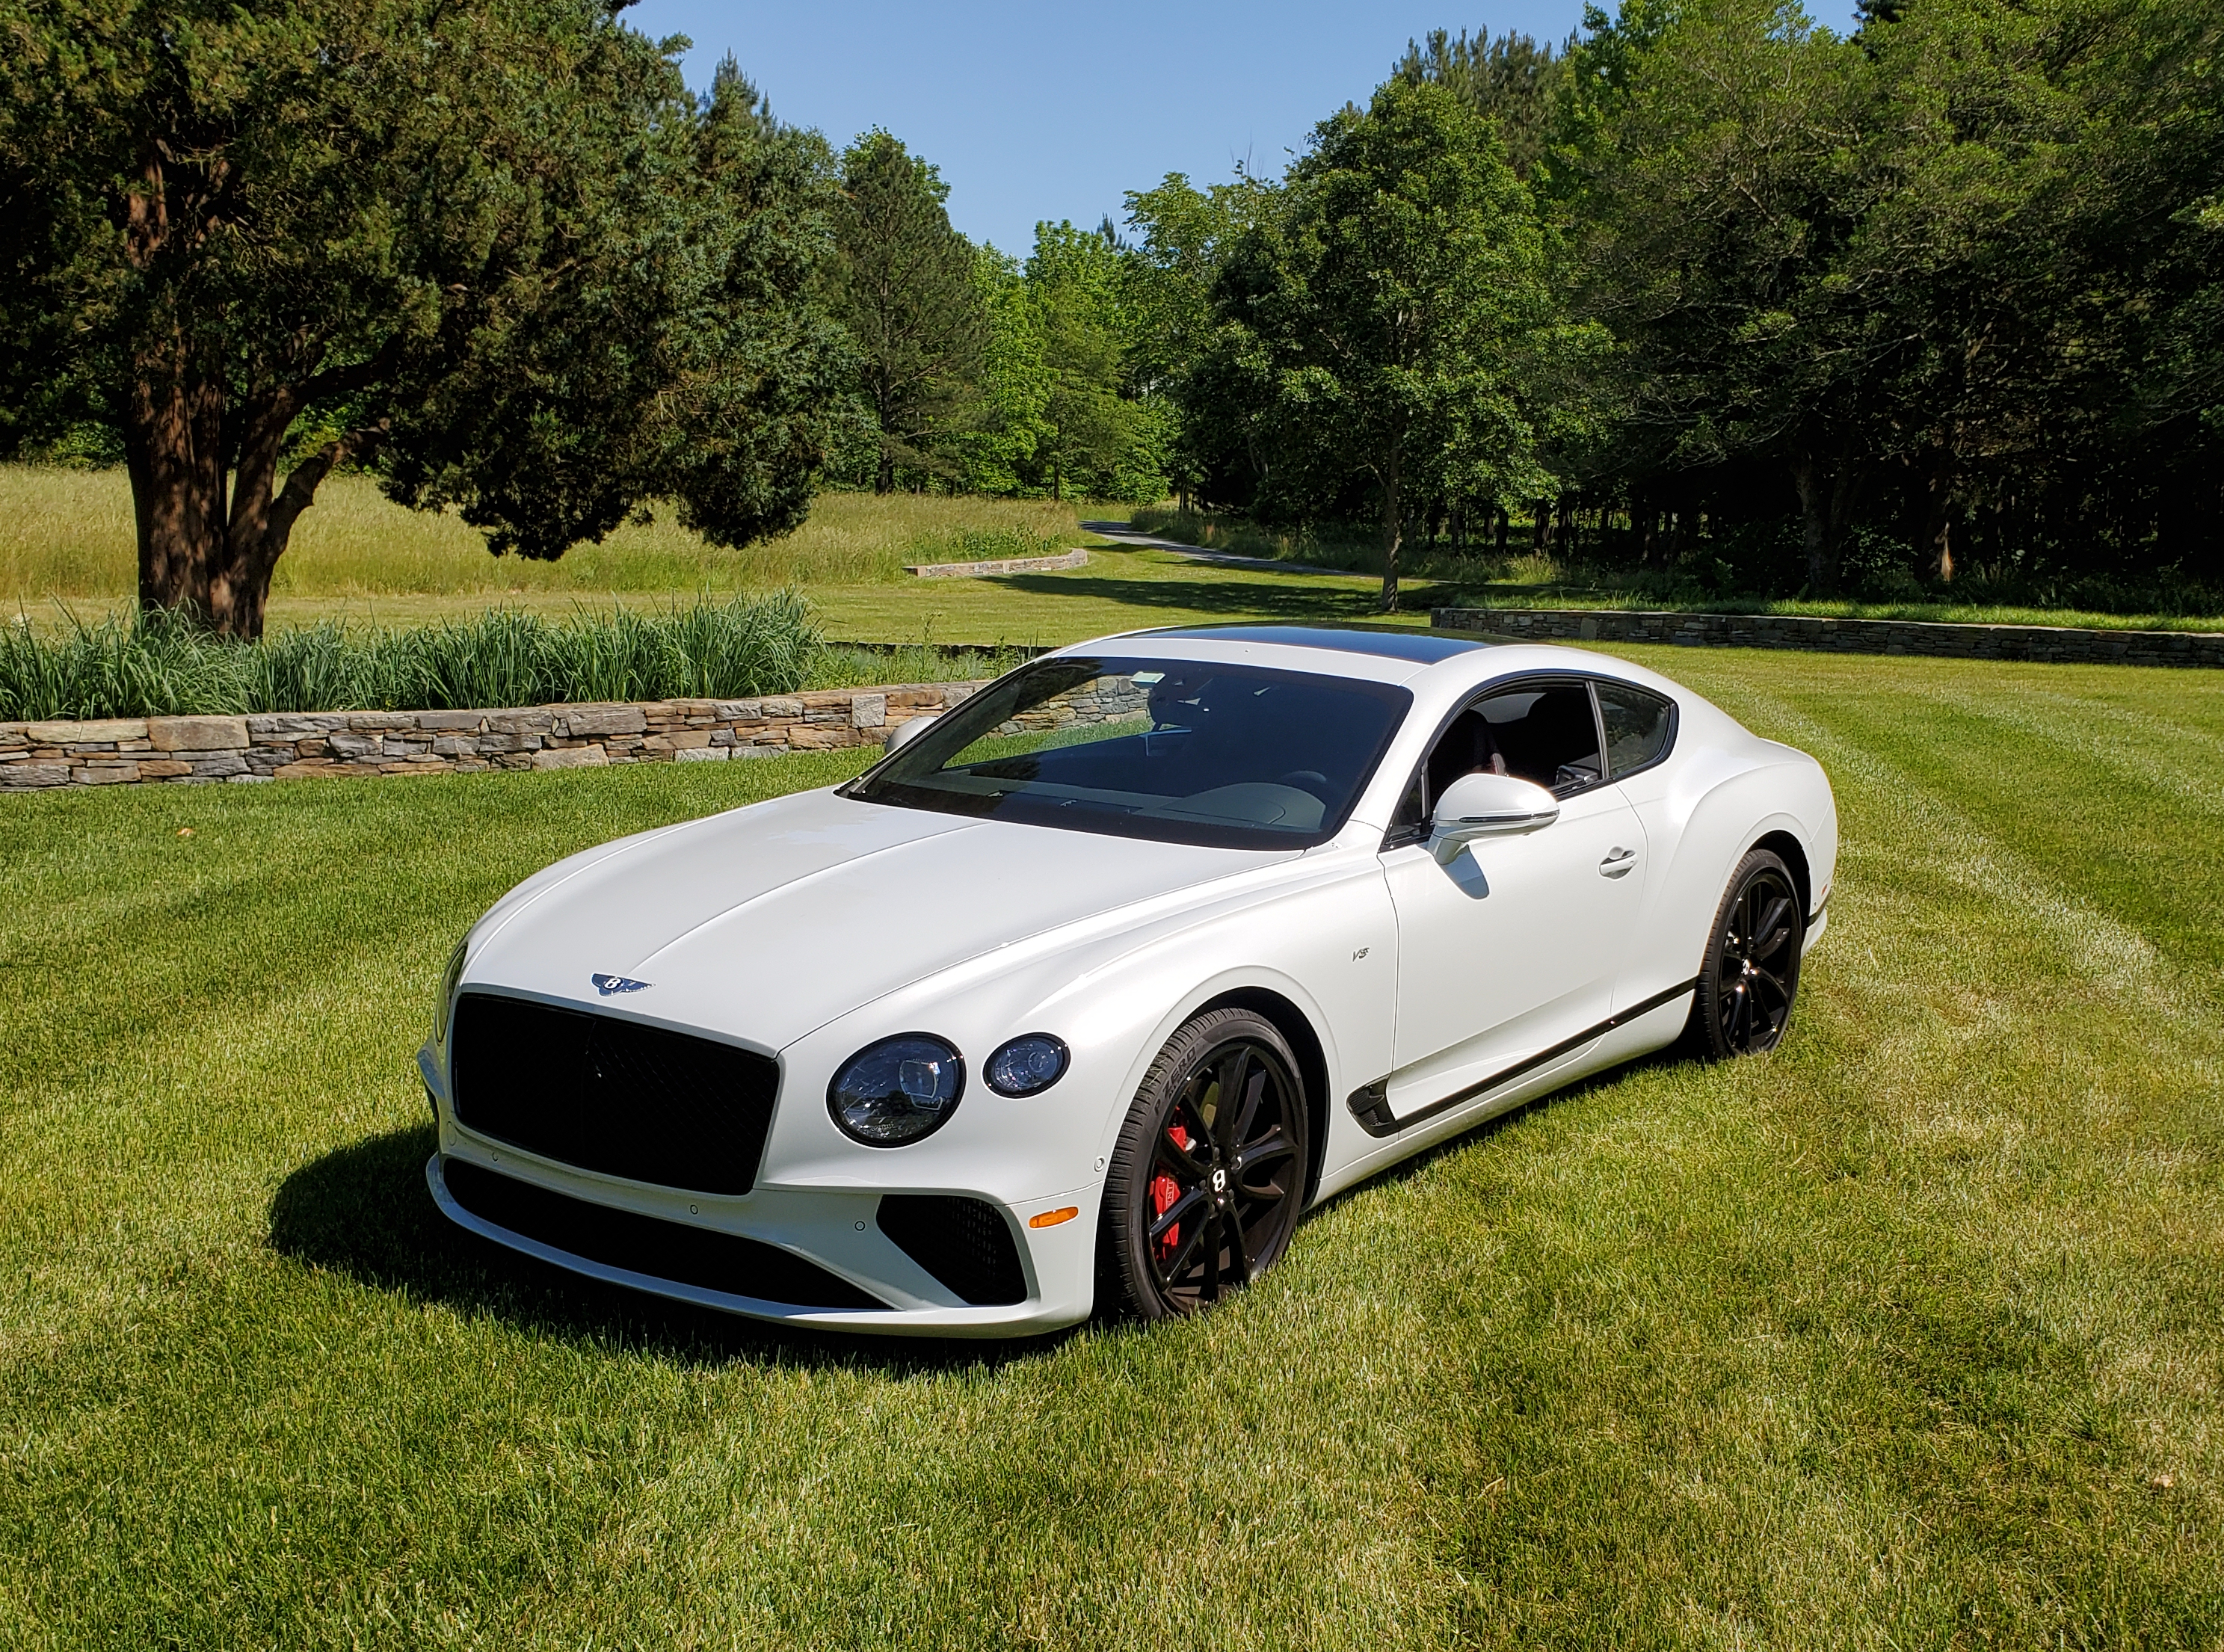 2021 Bentley Continental GT V8 in Ice on a grassy field with a stone wall and trees in the background